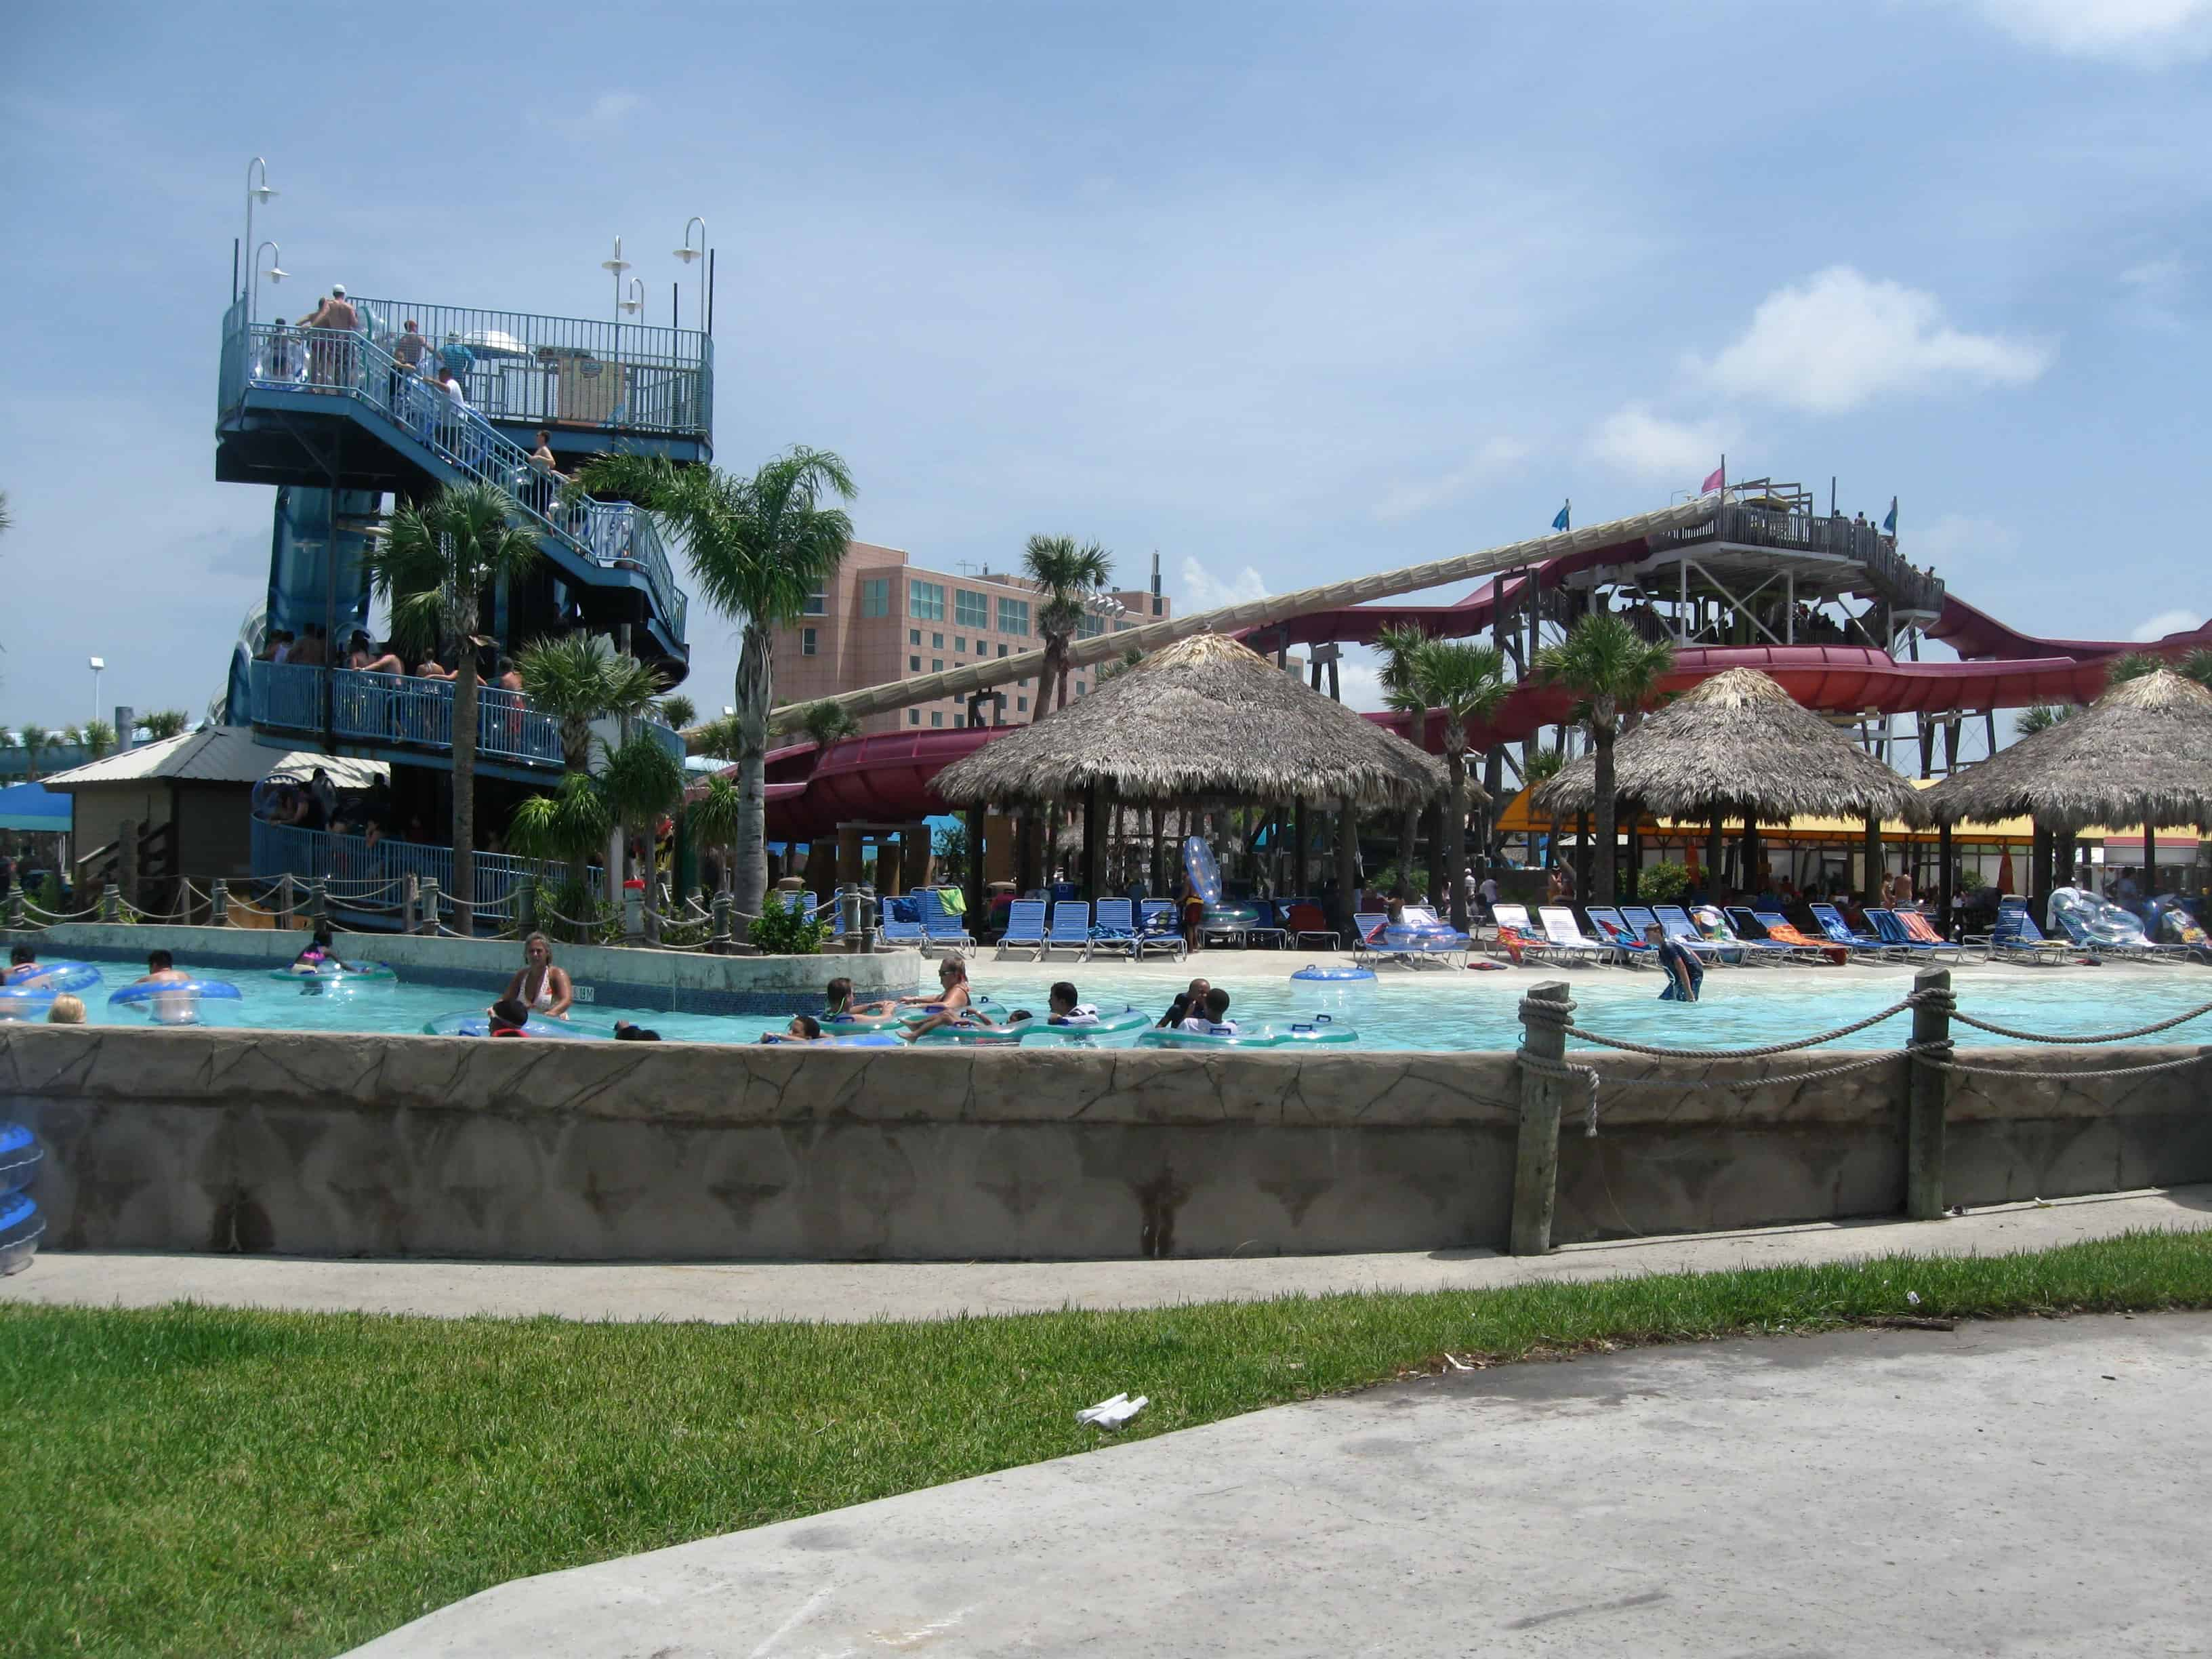 Schlitterbahn Waterpark - Best Family Vacations Spots in the USA